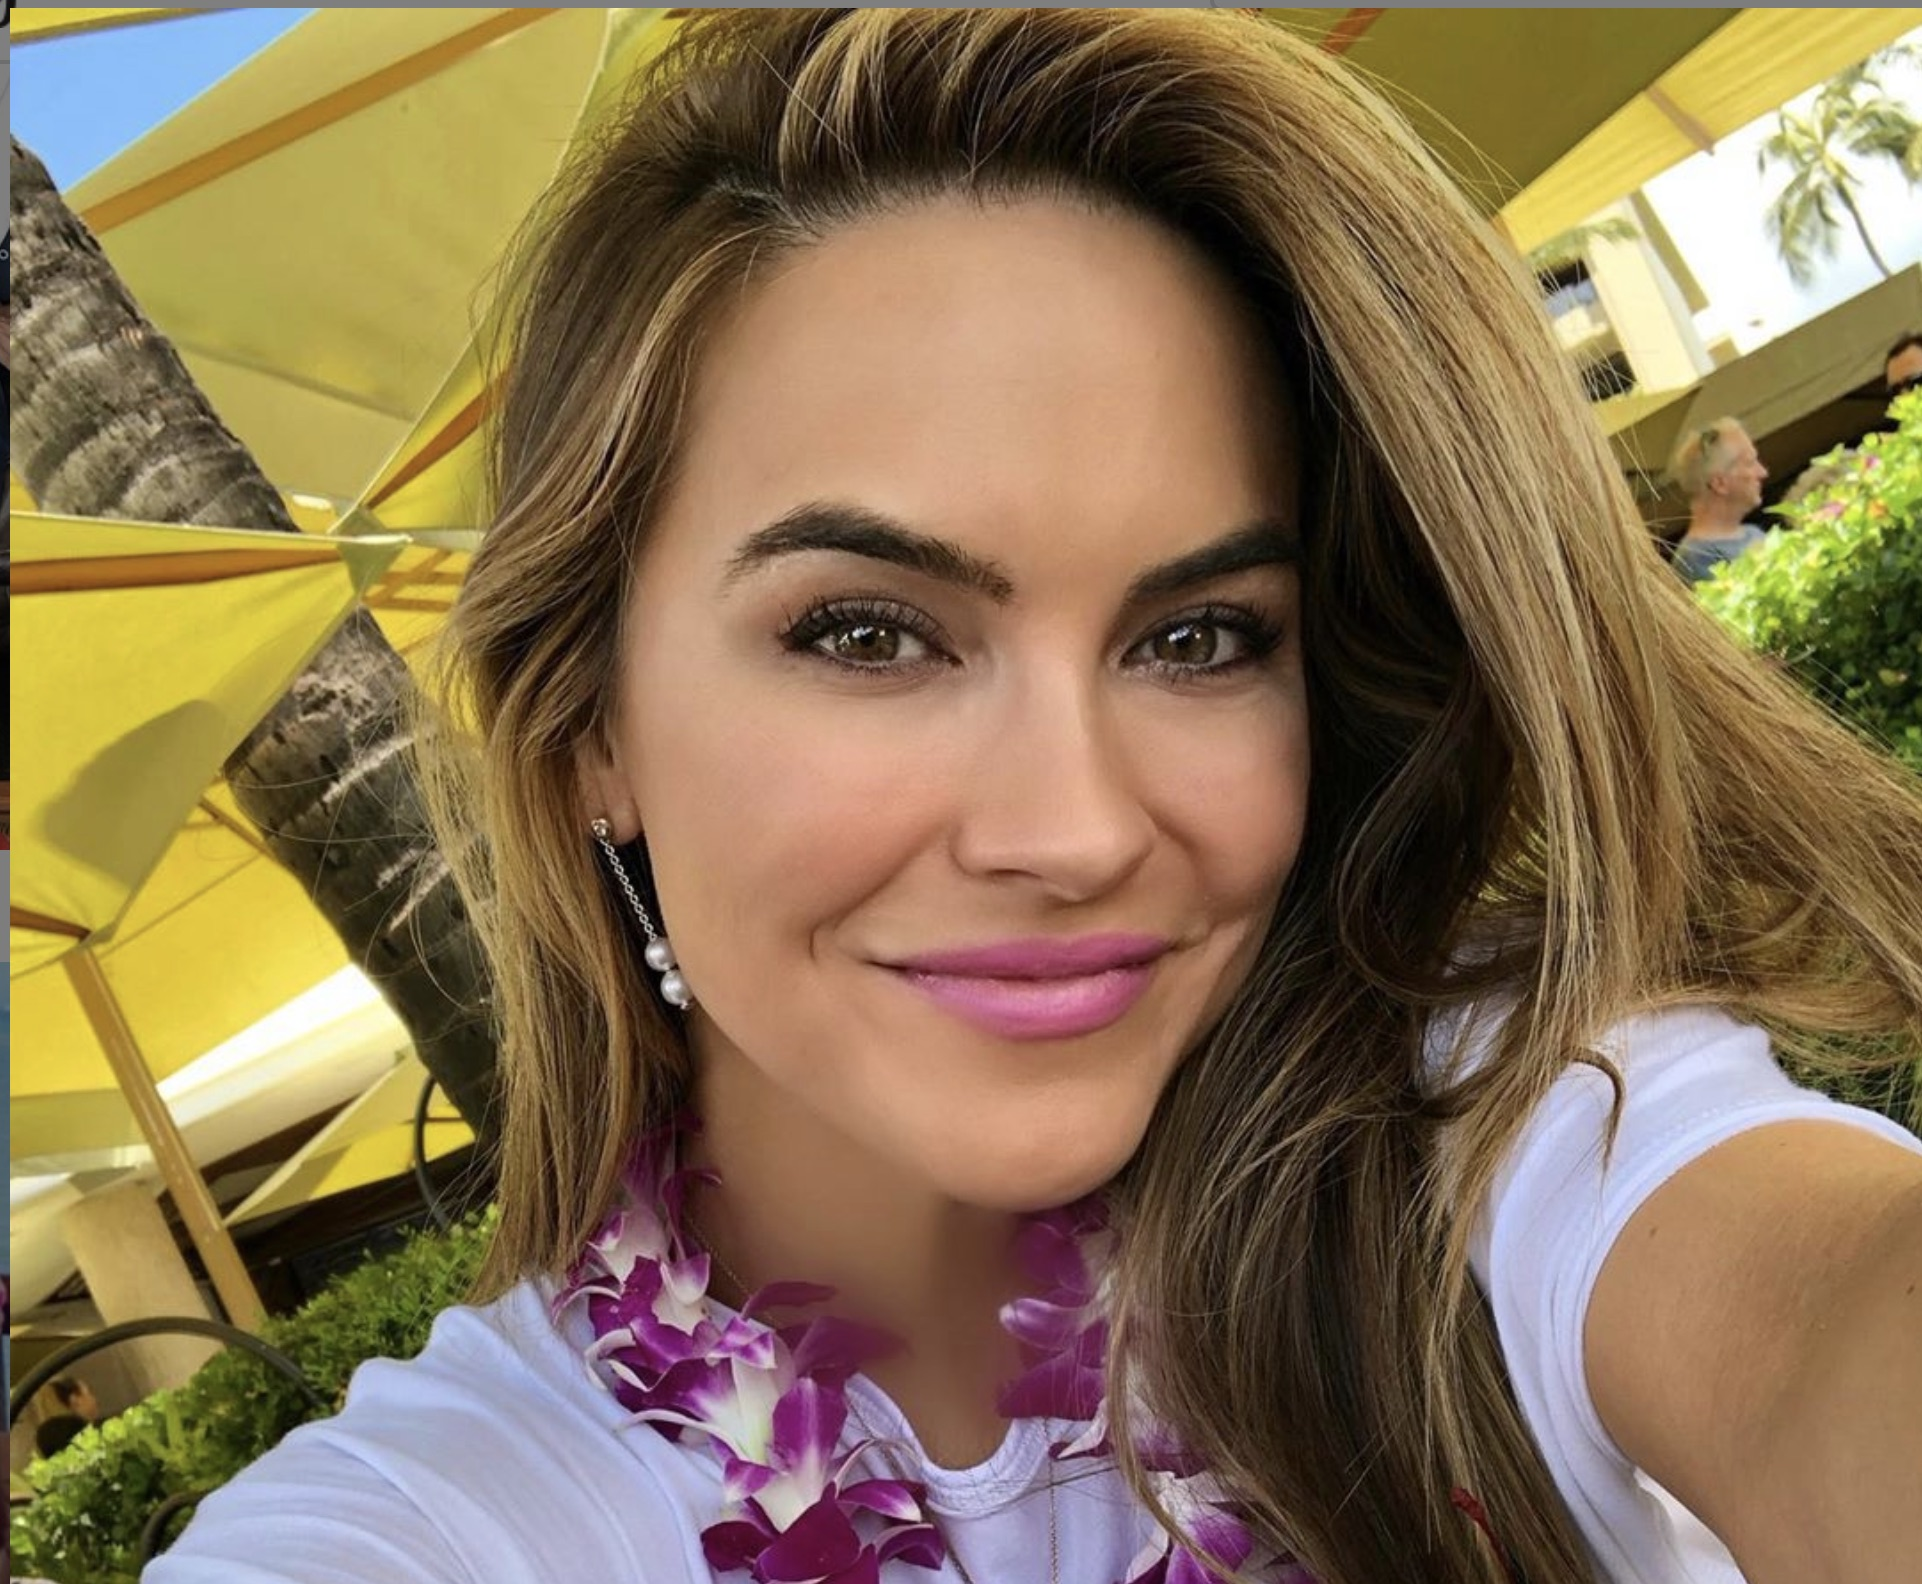 Chrishell Stause, DWTS Days of Our Lives-https://www.instagram.com/p/By1bQpHnlZn/